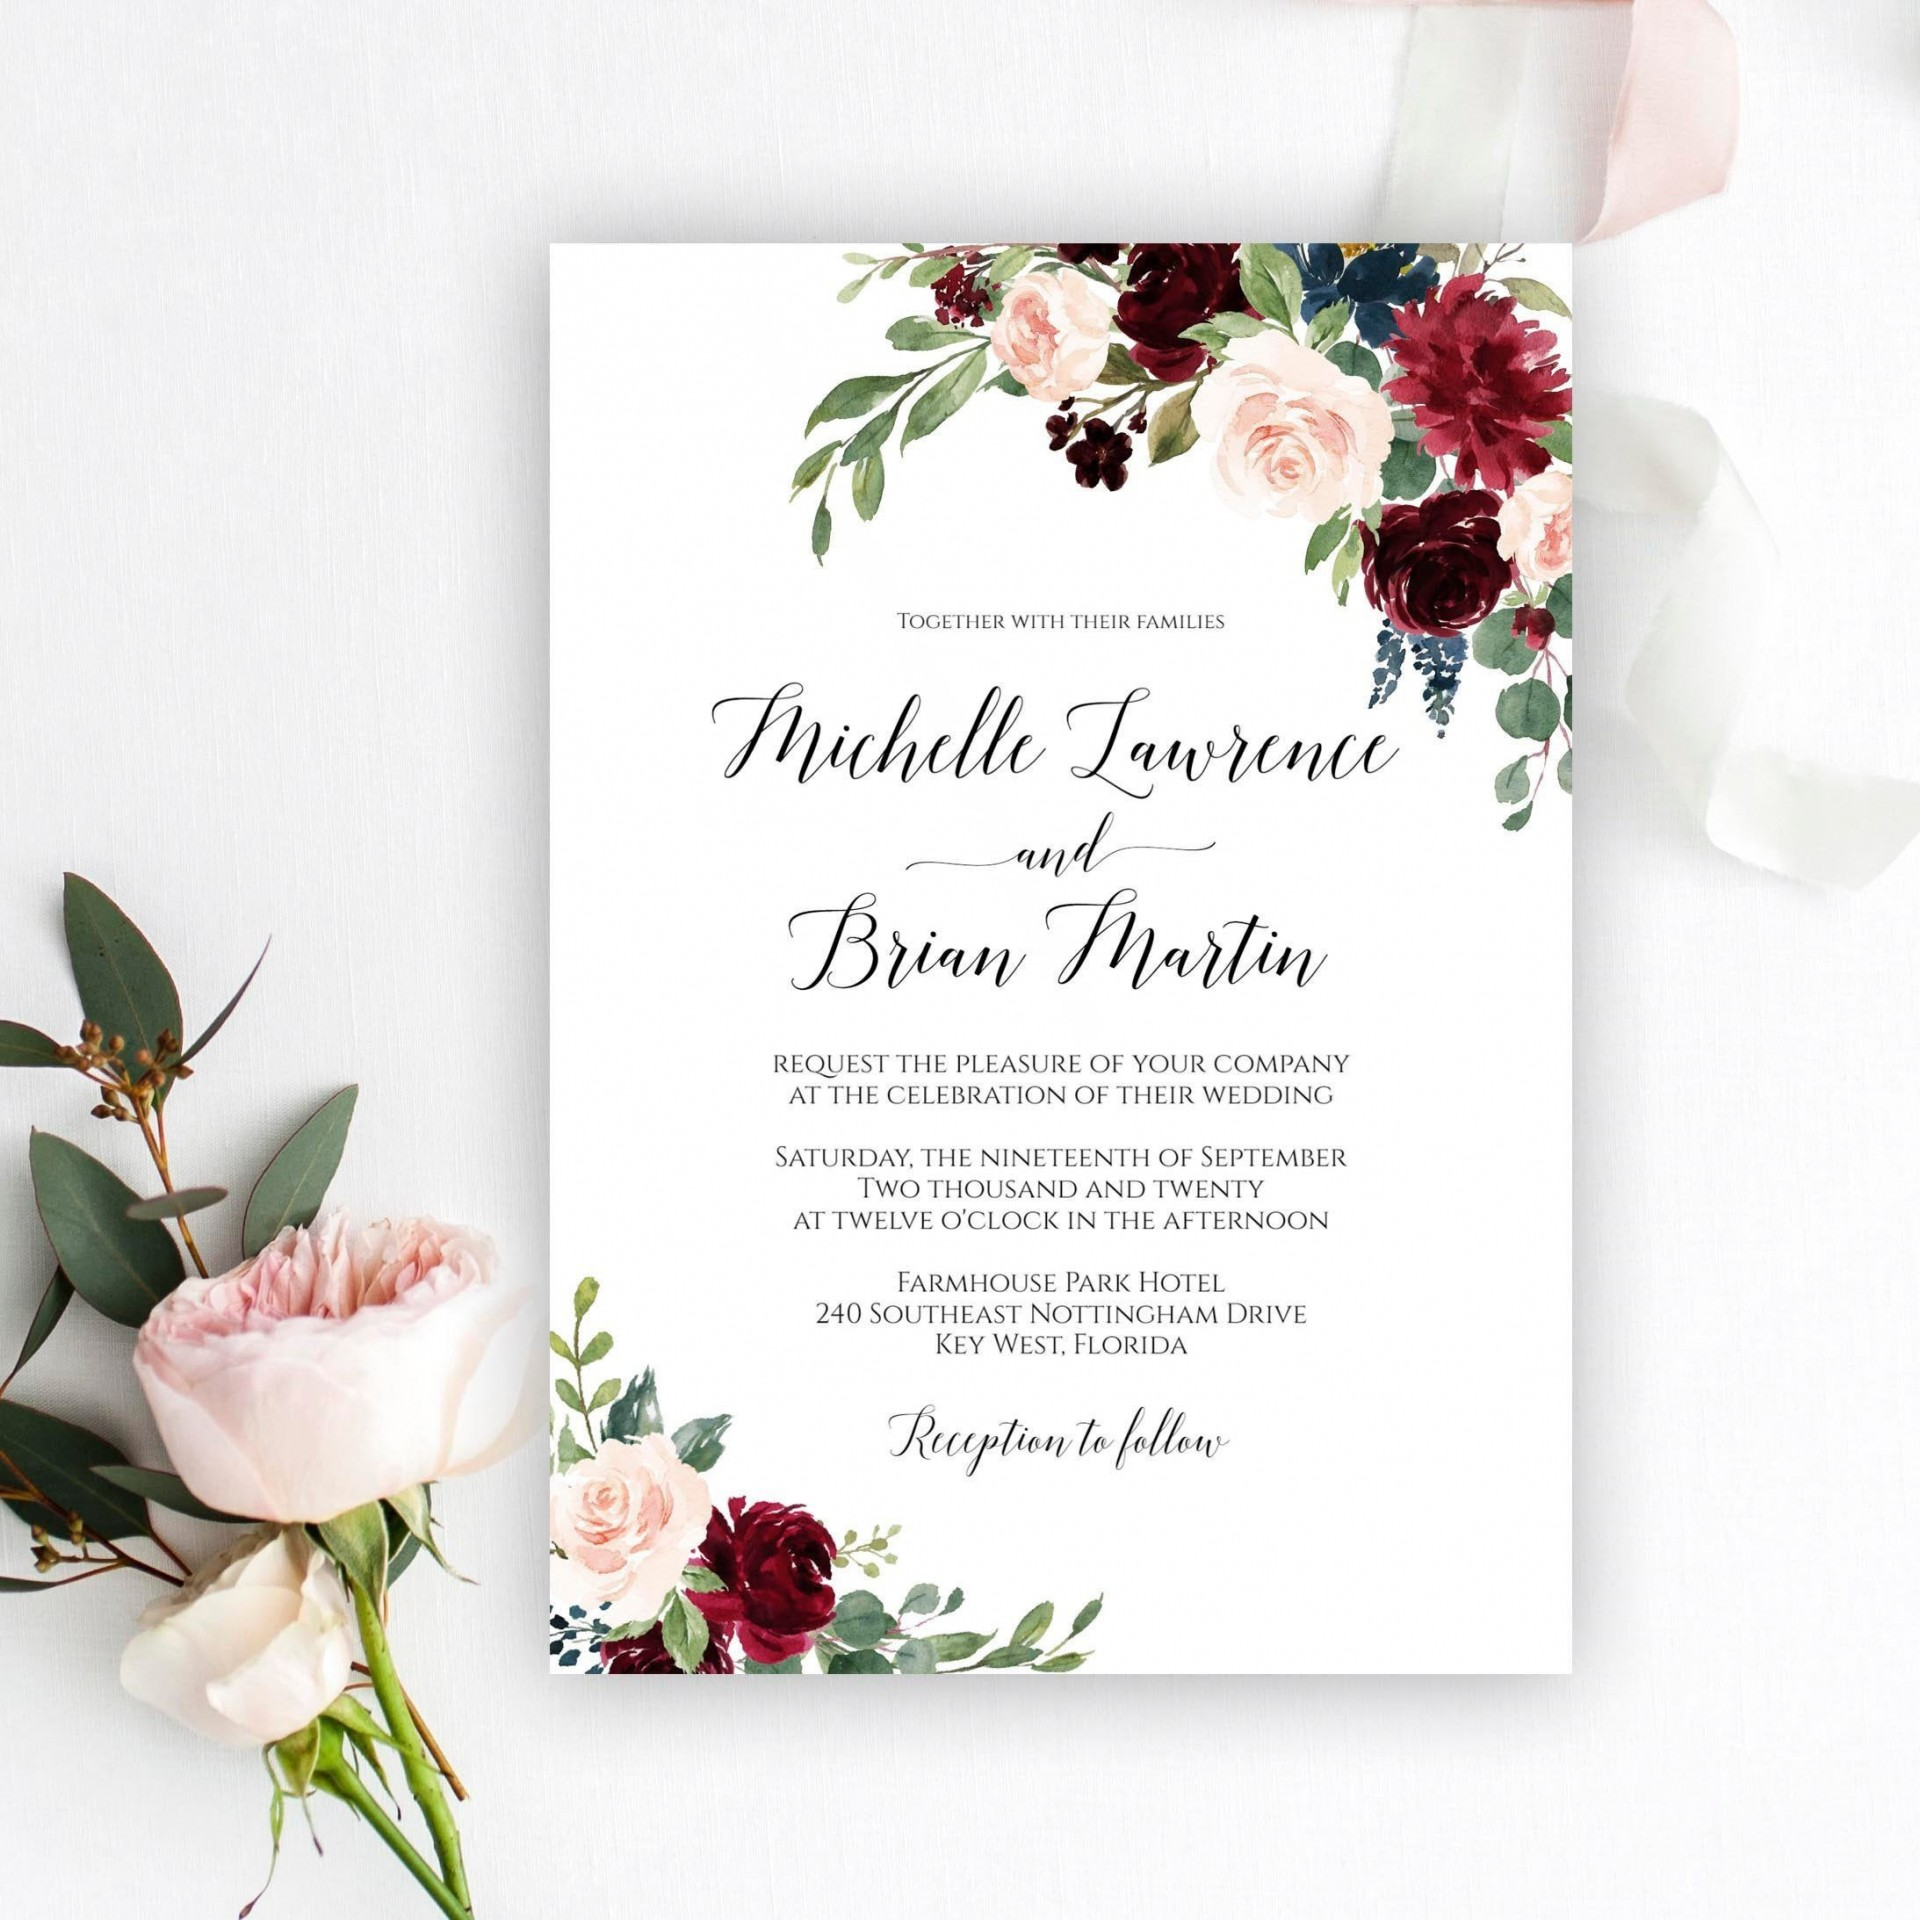 007 Wonderful Free Download Marriage Invitation Template Idea  Card Design Psd After Effect1920